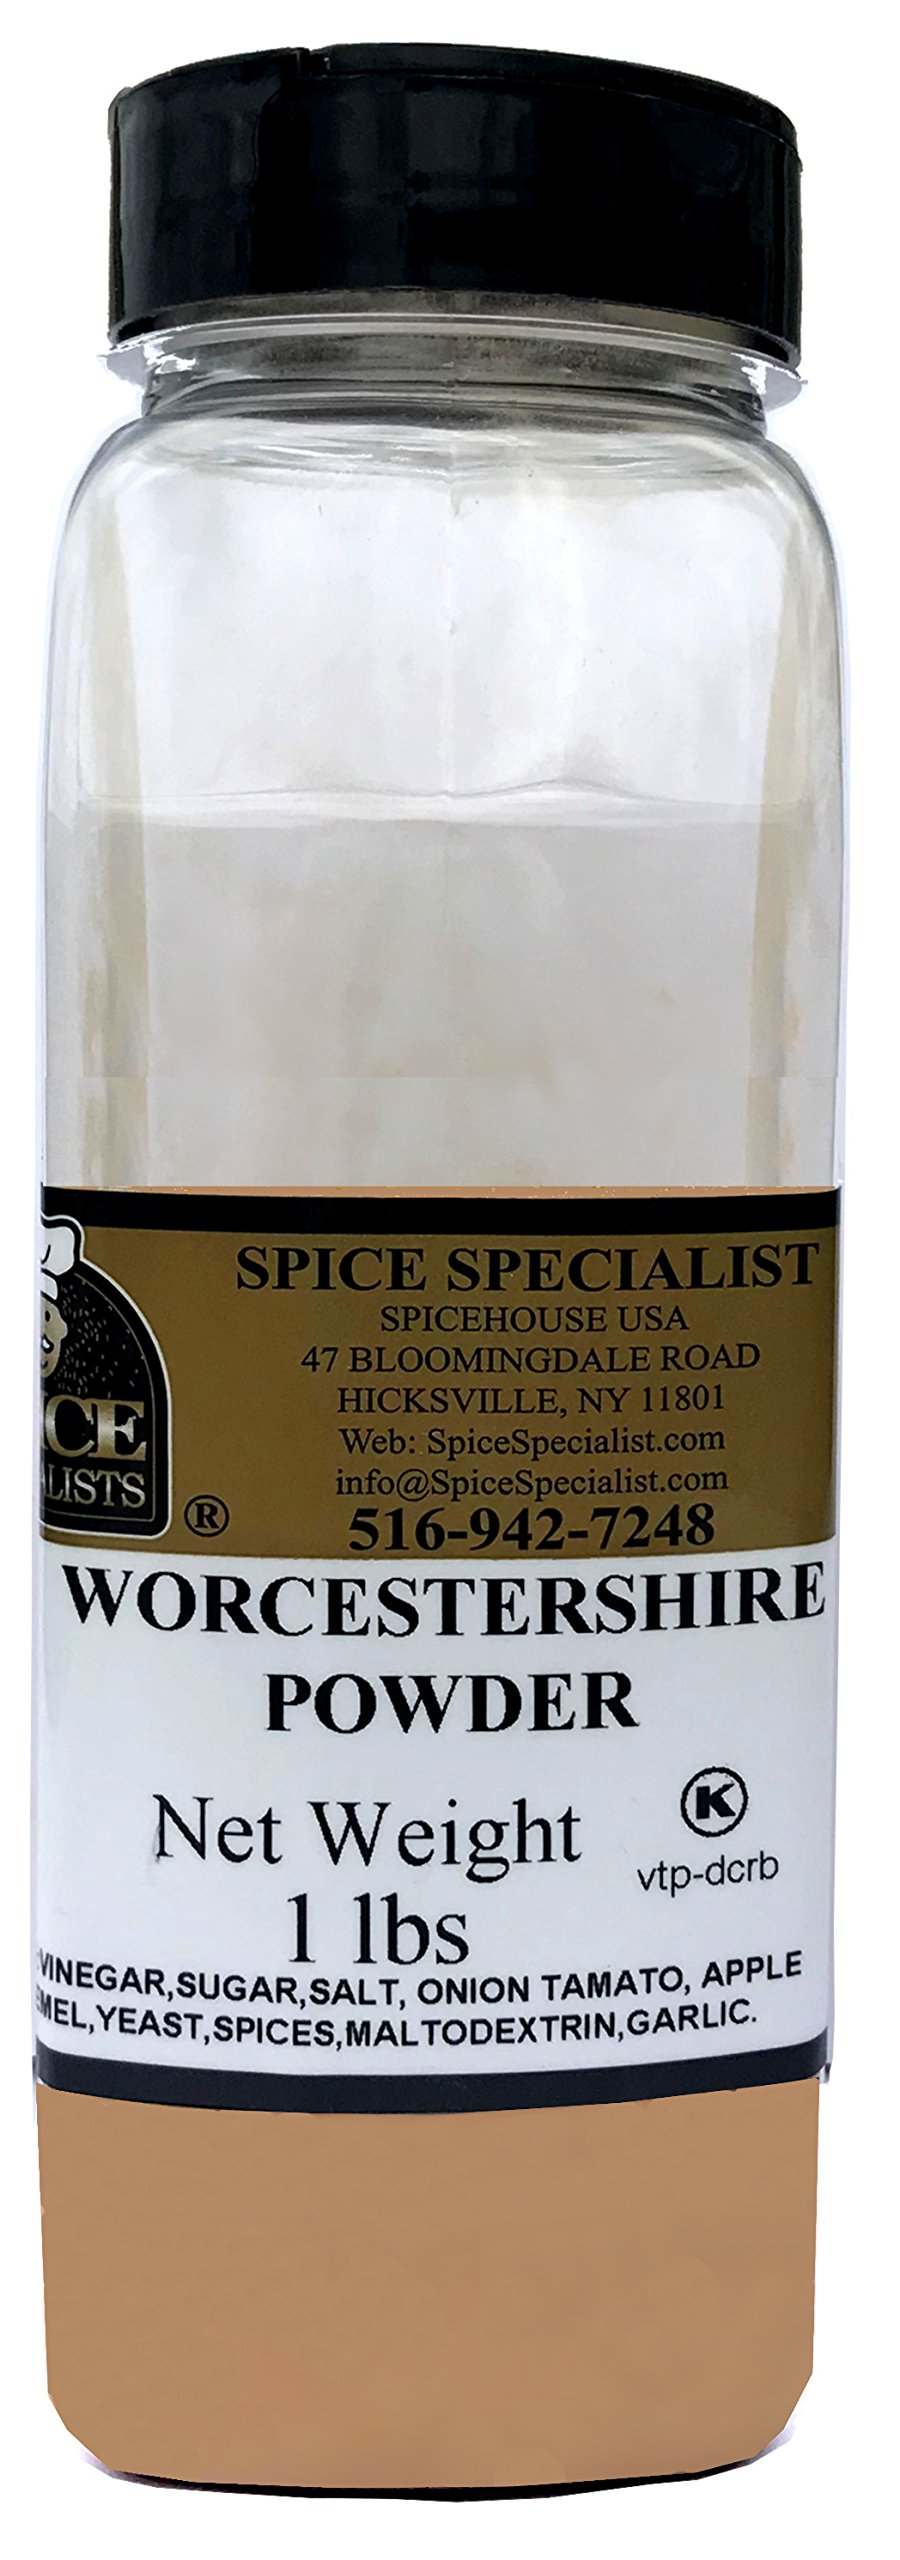 Chef Cherie's Worcestershire Powder - 1 lb in Plastic Container